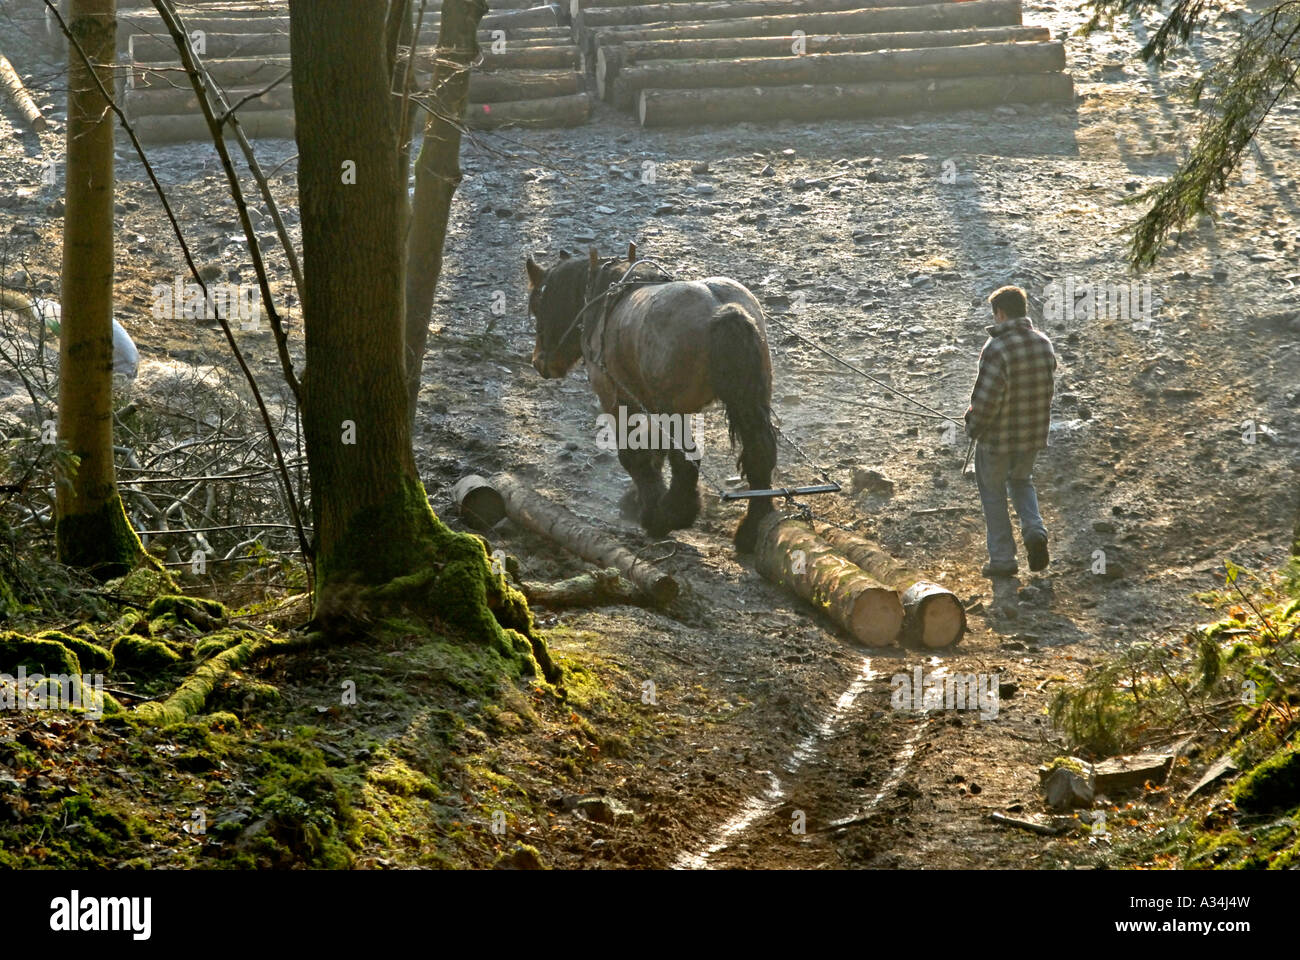 ardennes-draught-horse-stallion-hauling-logs-great-knott-wood-lake-A34J4W.jpg